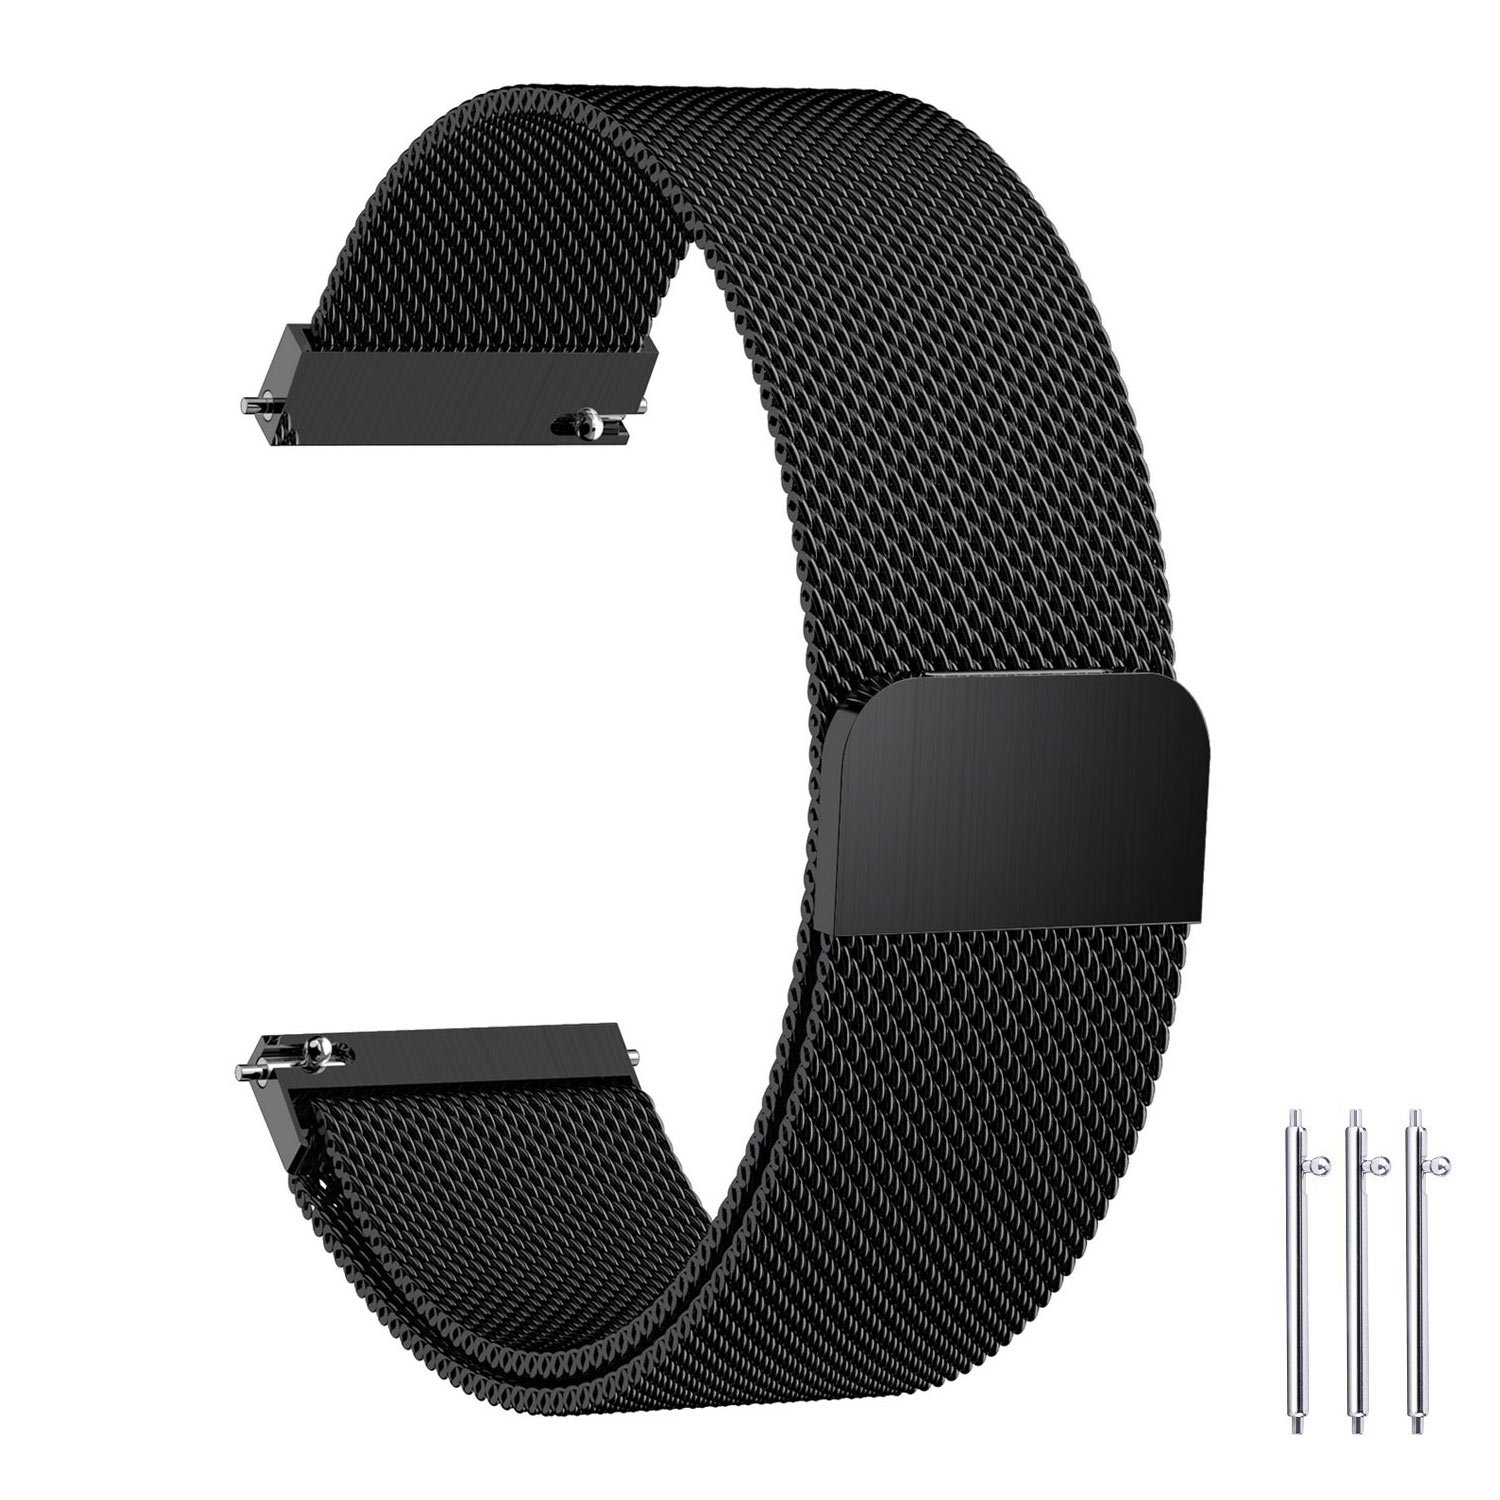 Fullmosa Compatible Samsung Gear S2 Classic Watch Band, 7 Colors 20mm Milanese Bracelet Watch Strap with Quick Release Pins Compatible Huawei Watch 2 /Moto 360 2nd Gen,Black